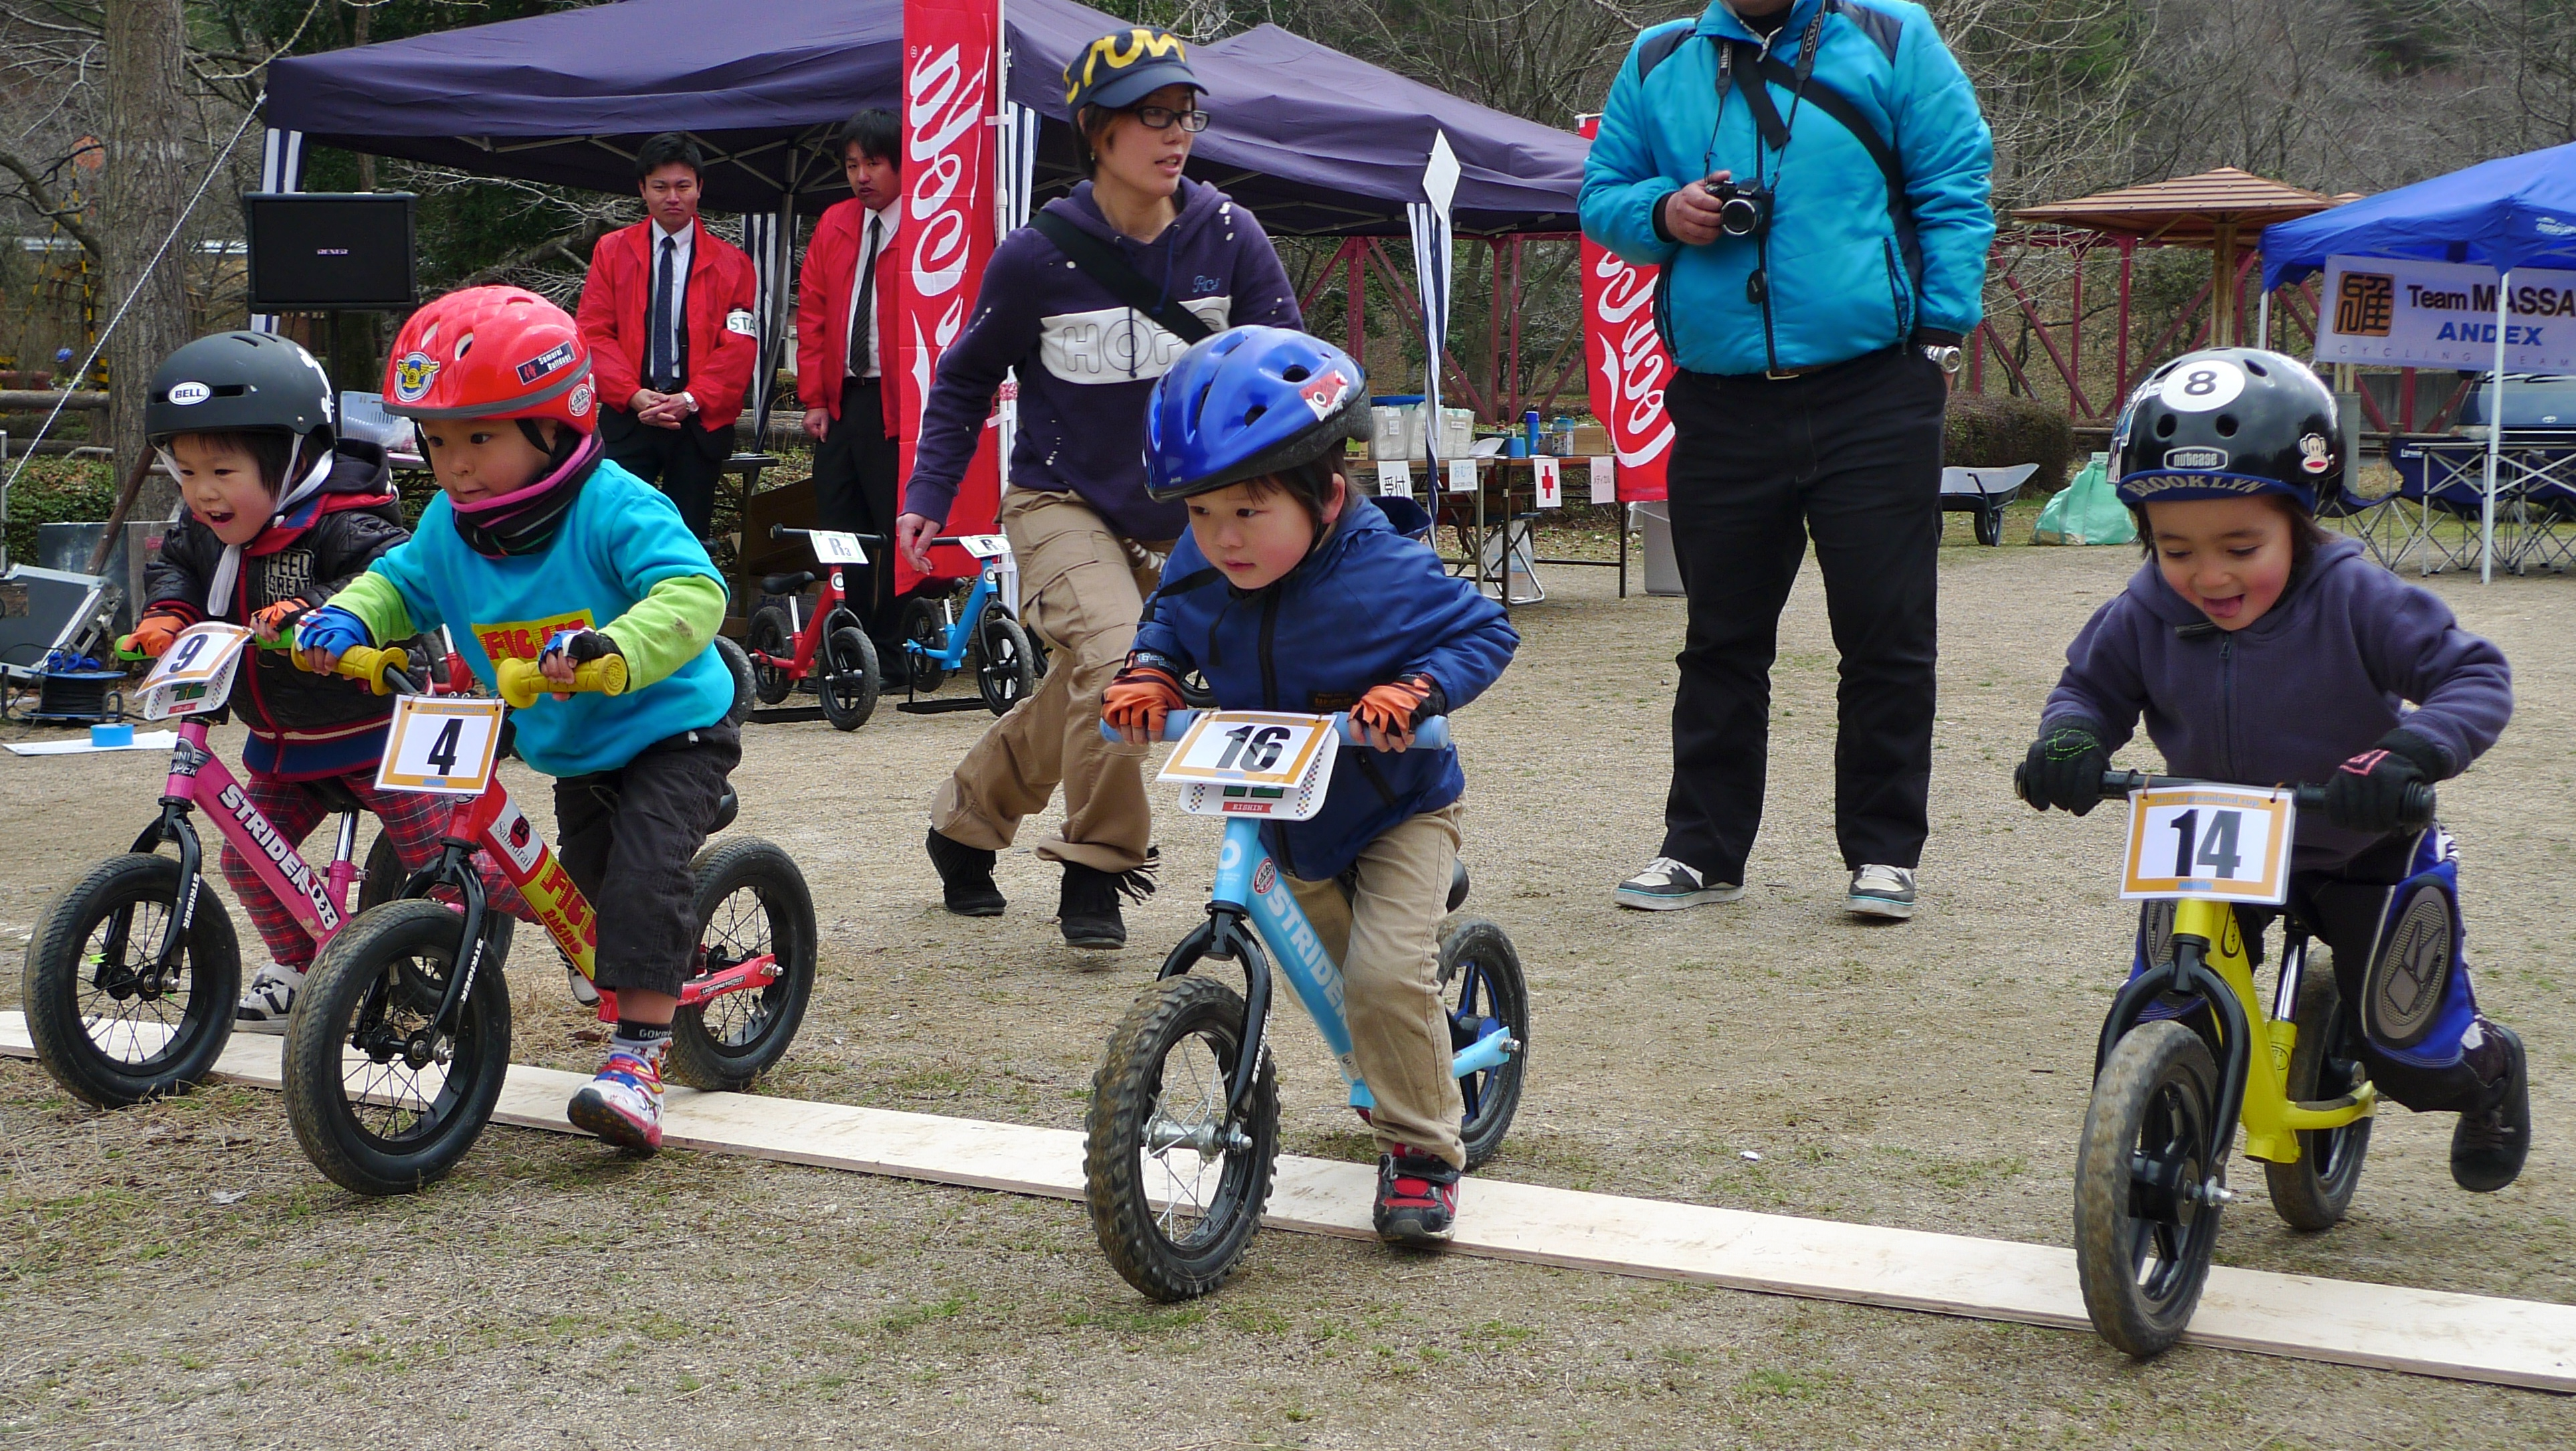 runbike racing